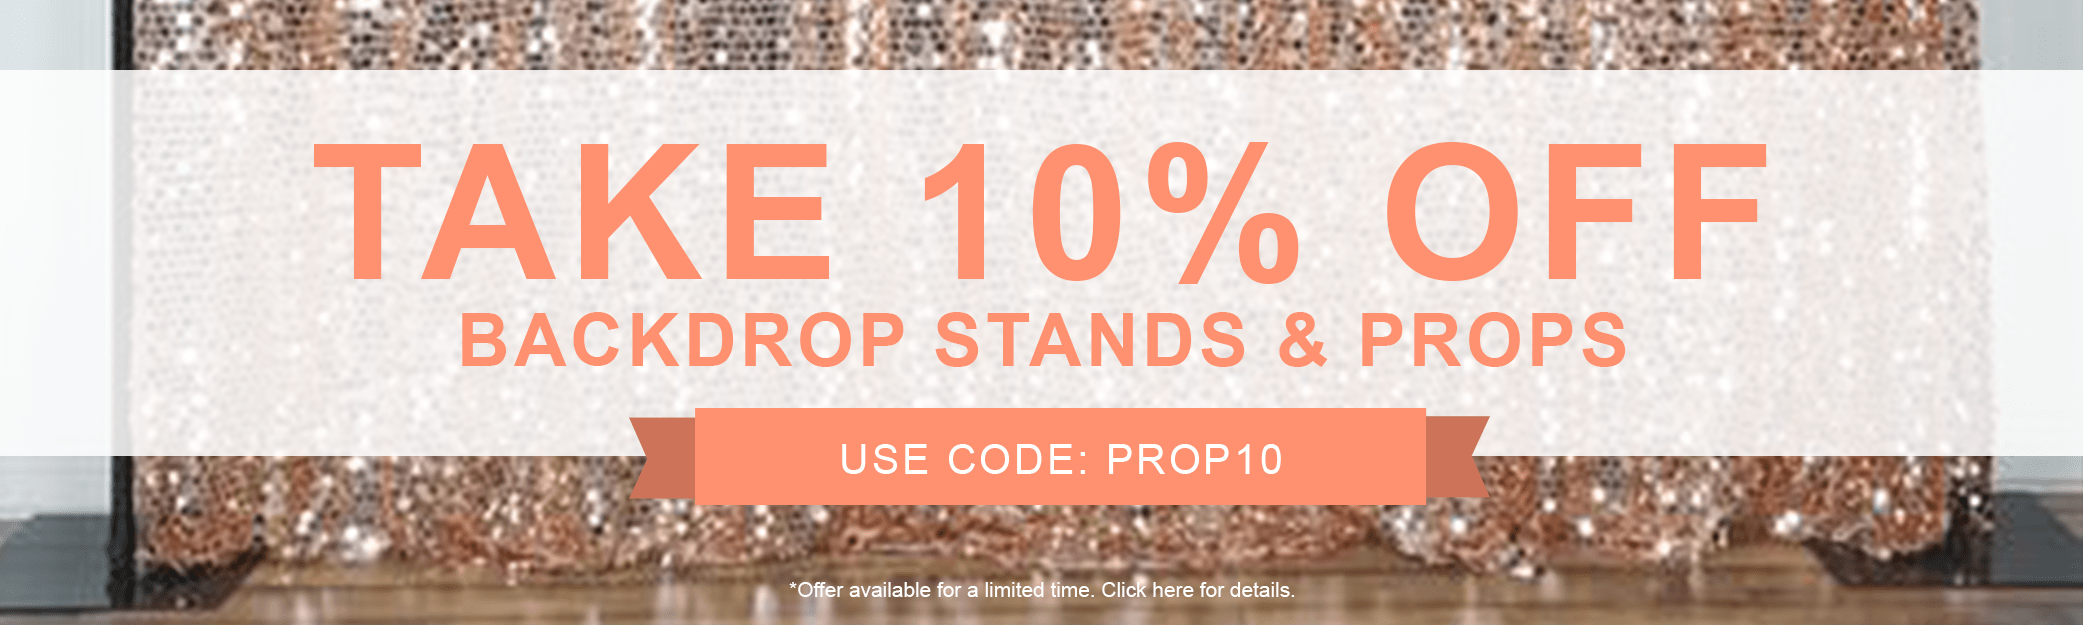 10% off Backdrop Stands & Props